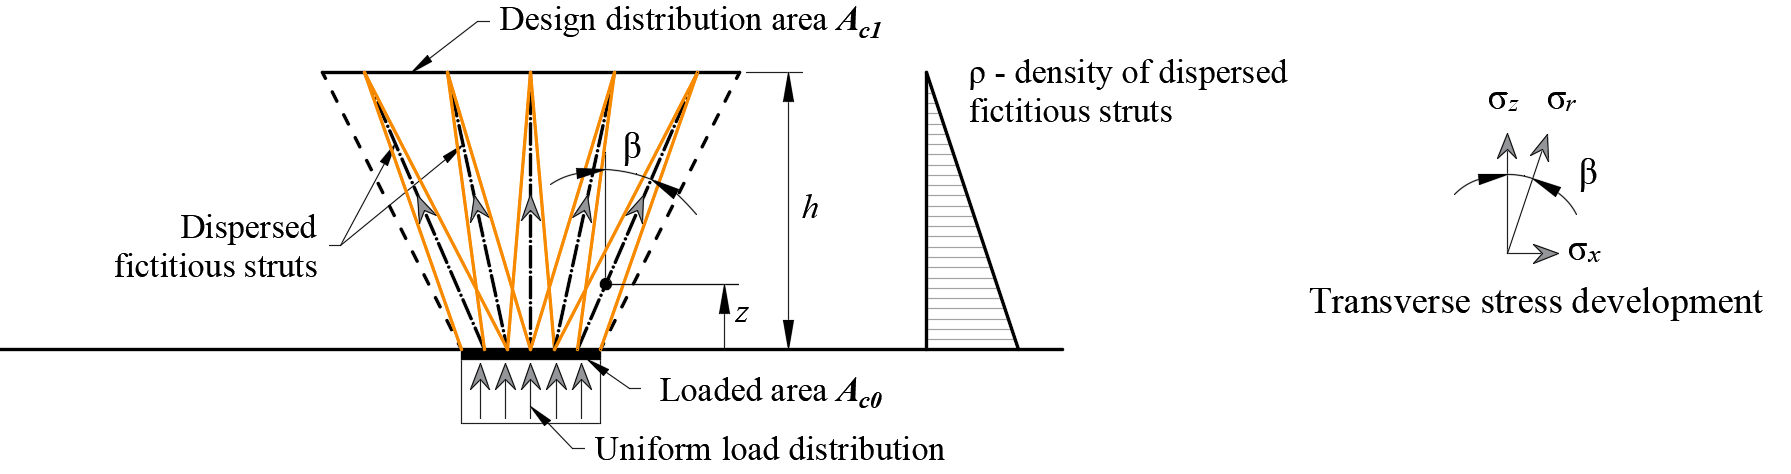 Fig. 37	Fictitious struts in the computational model.